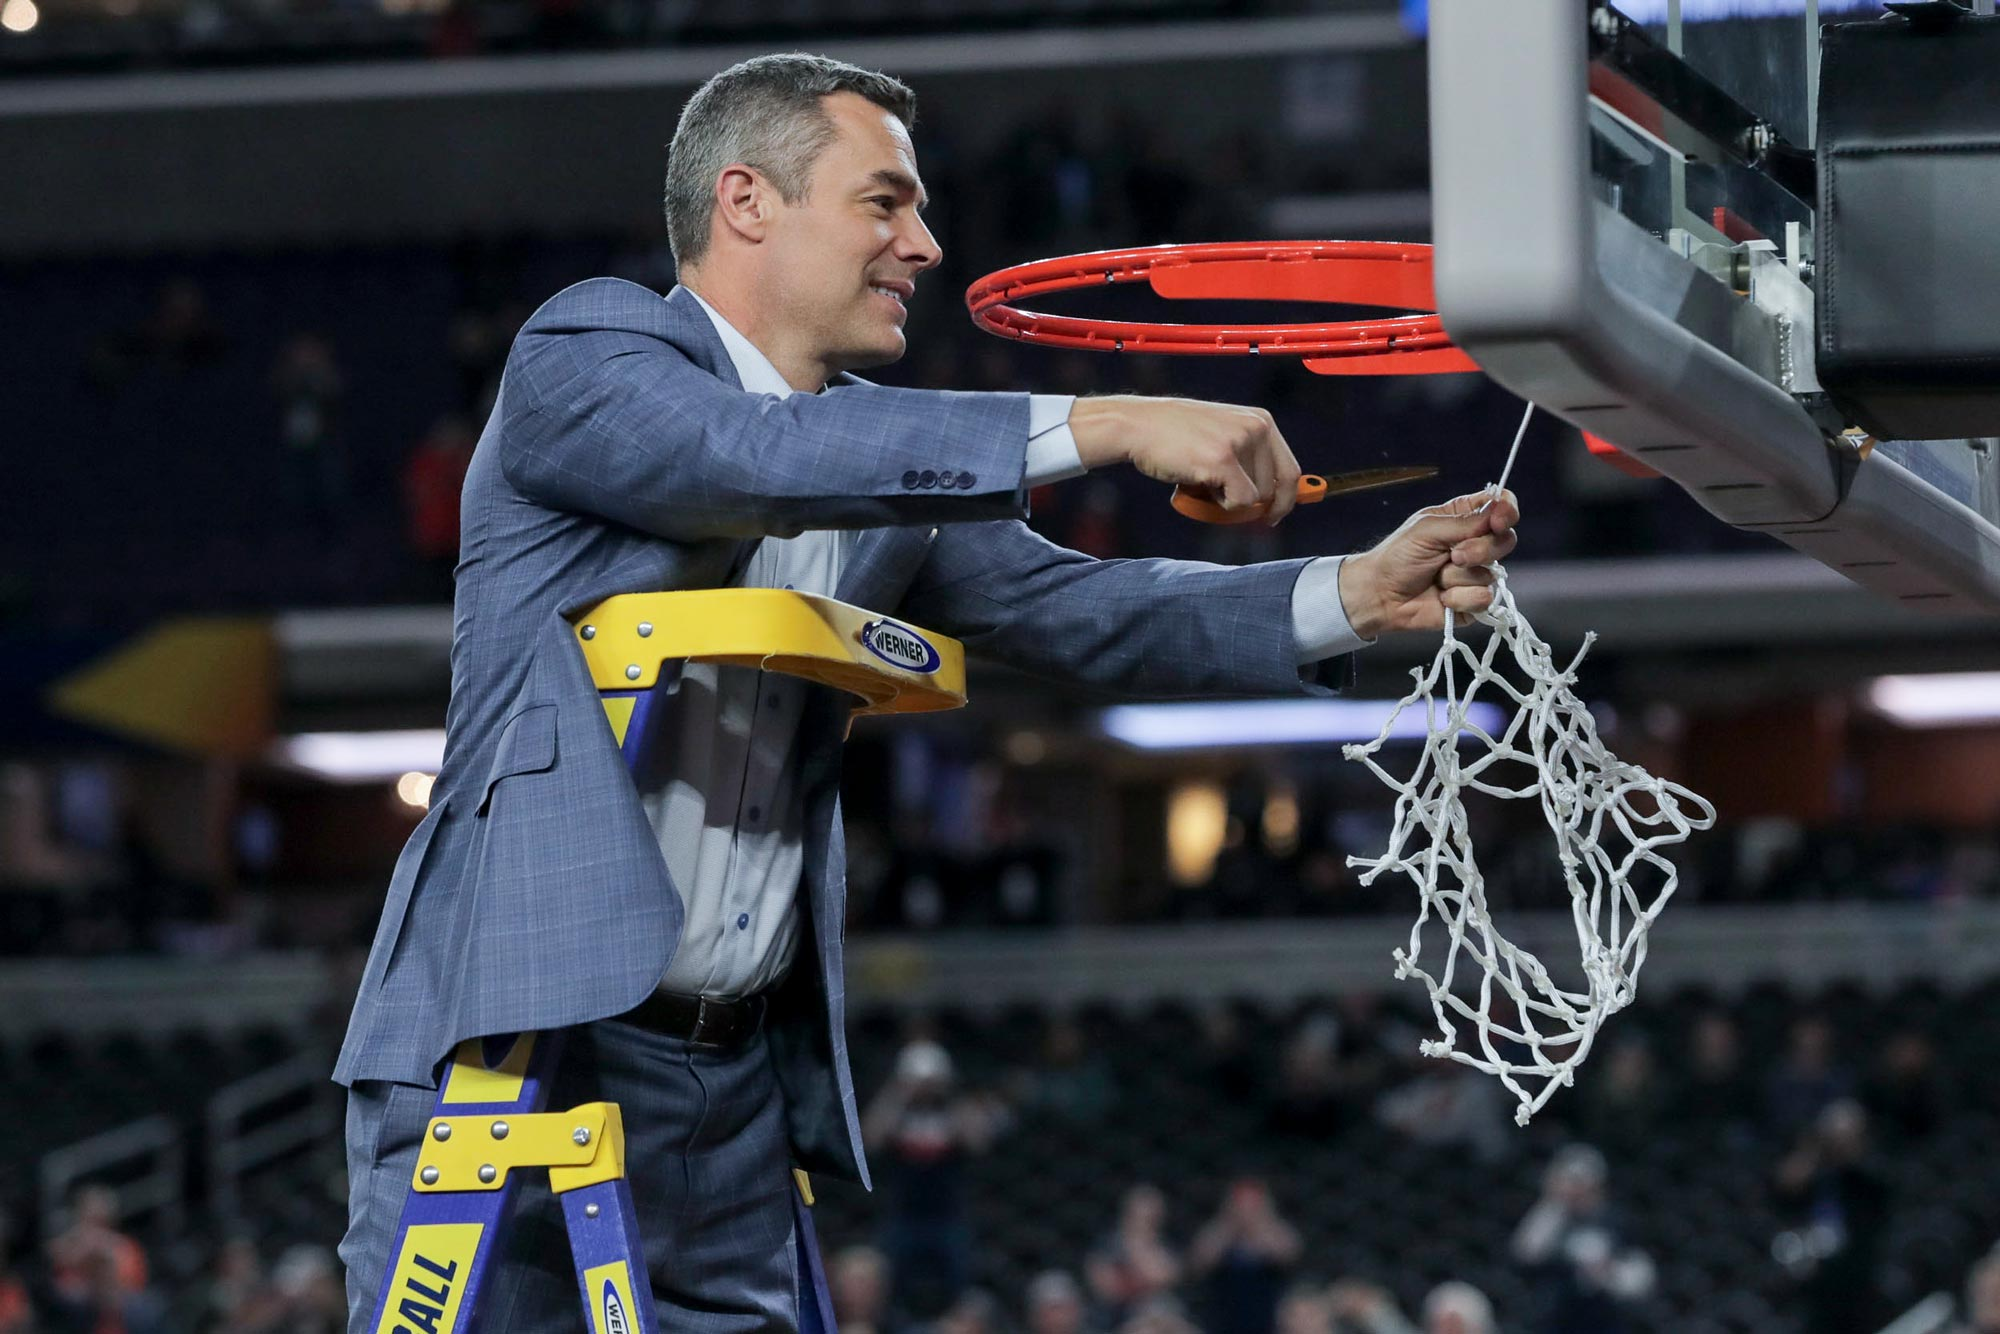 Head coach Tony Bennett cuts down the net at the Final Four, a cathartic moment for himself and the Cavalier basketball program.